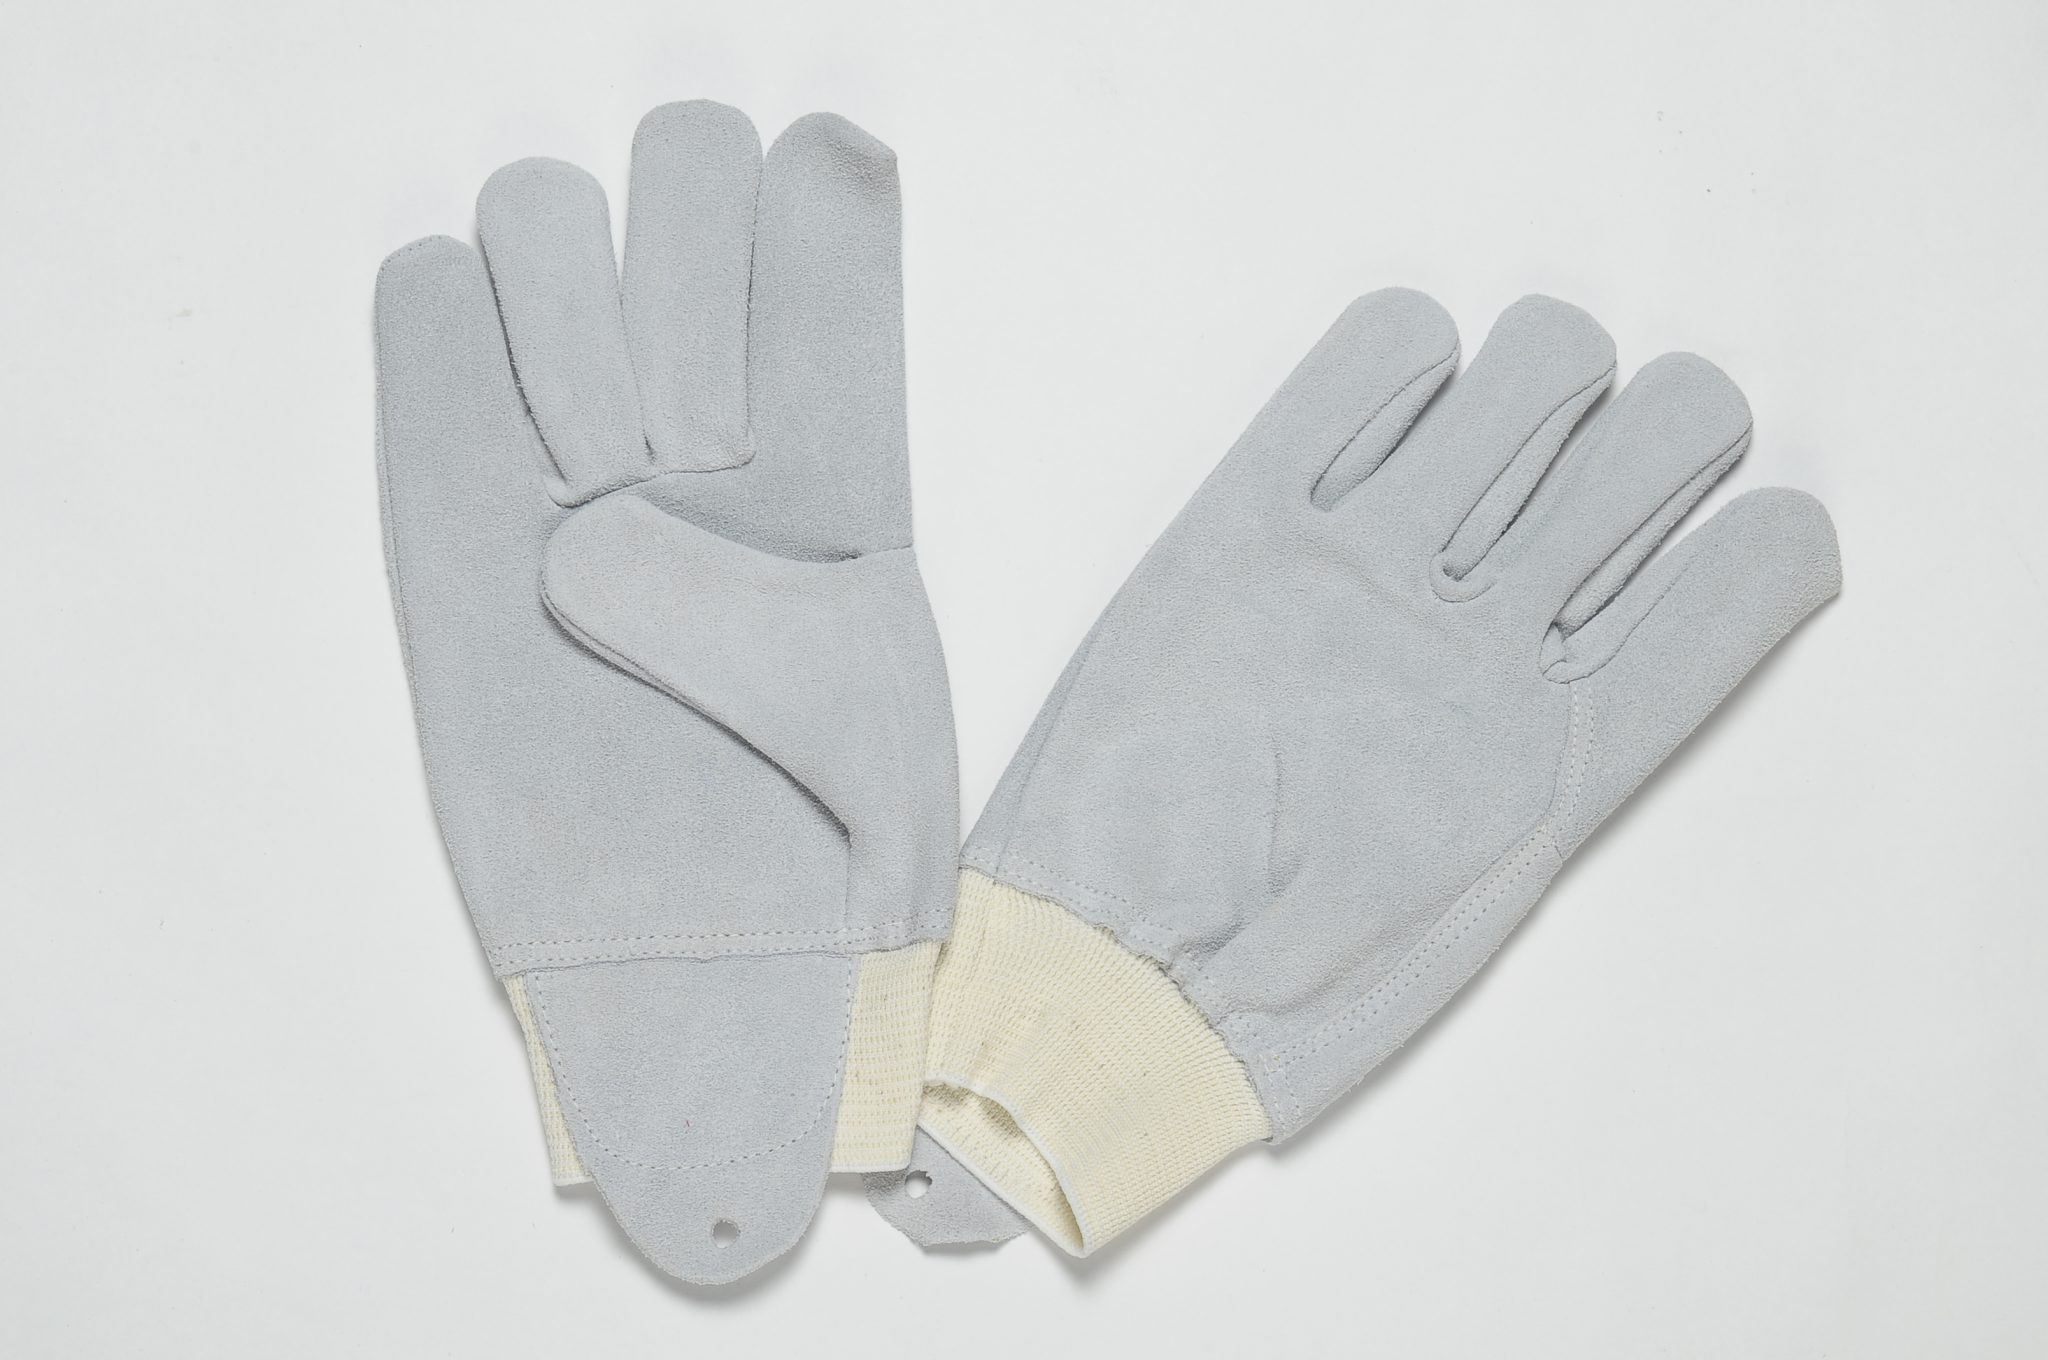 NATURAL SPLIT GLOVES WITH WHITE DRILL BACK AND WHITE RIB ELASTIC AT THE WRIST